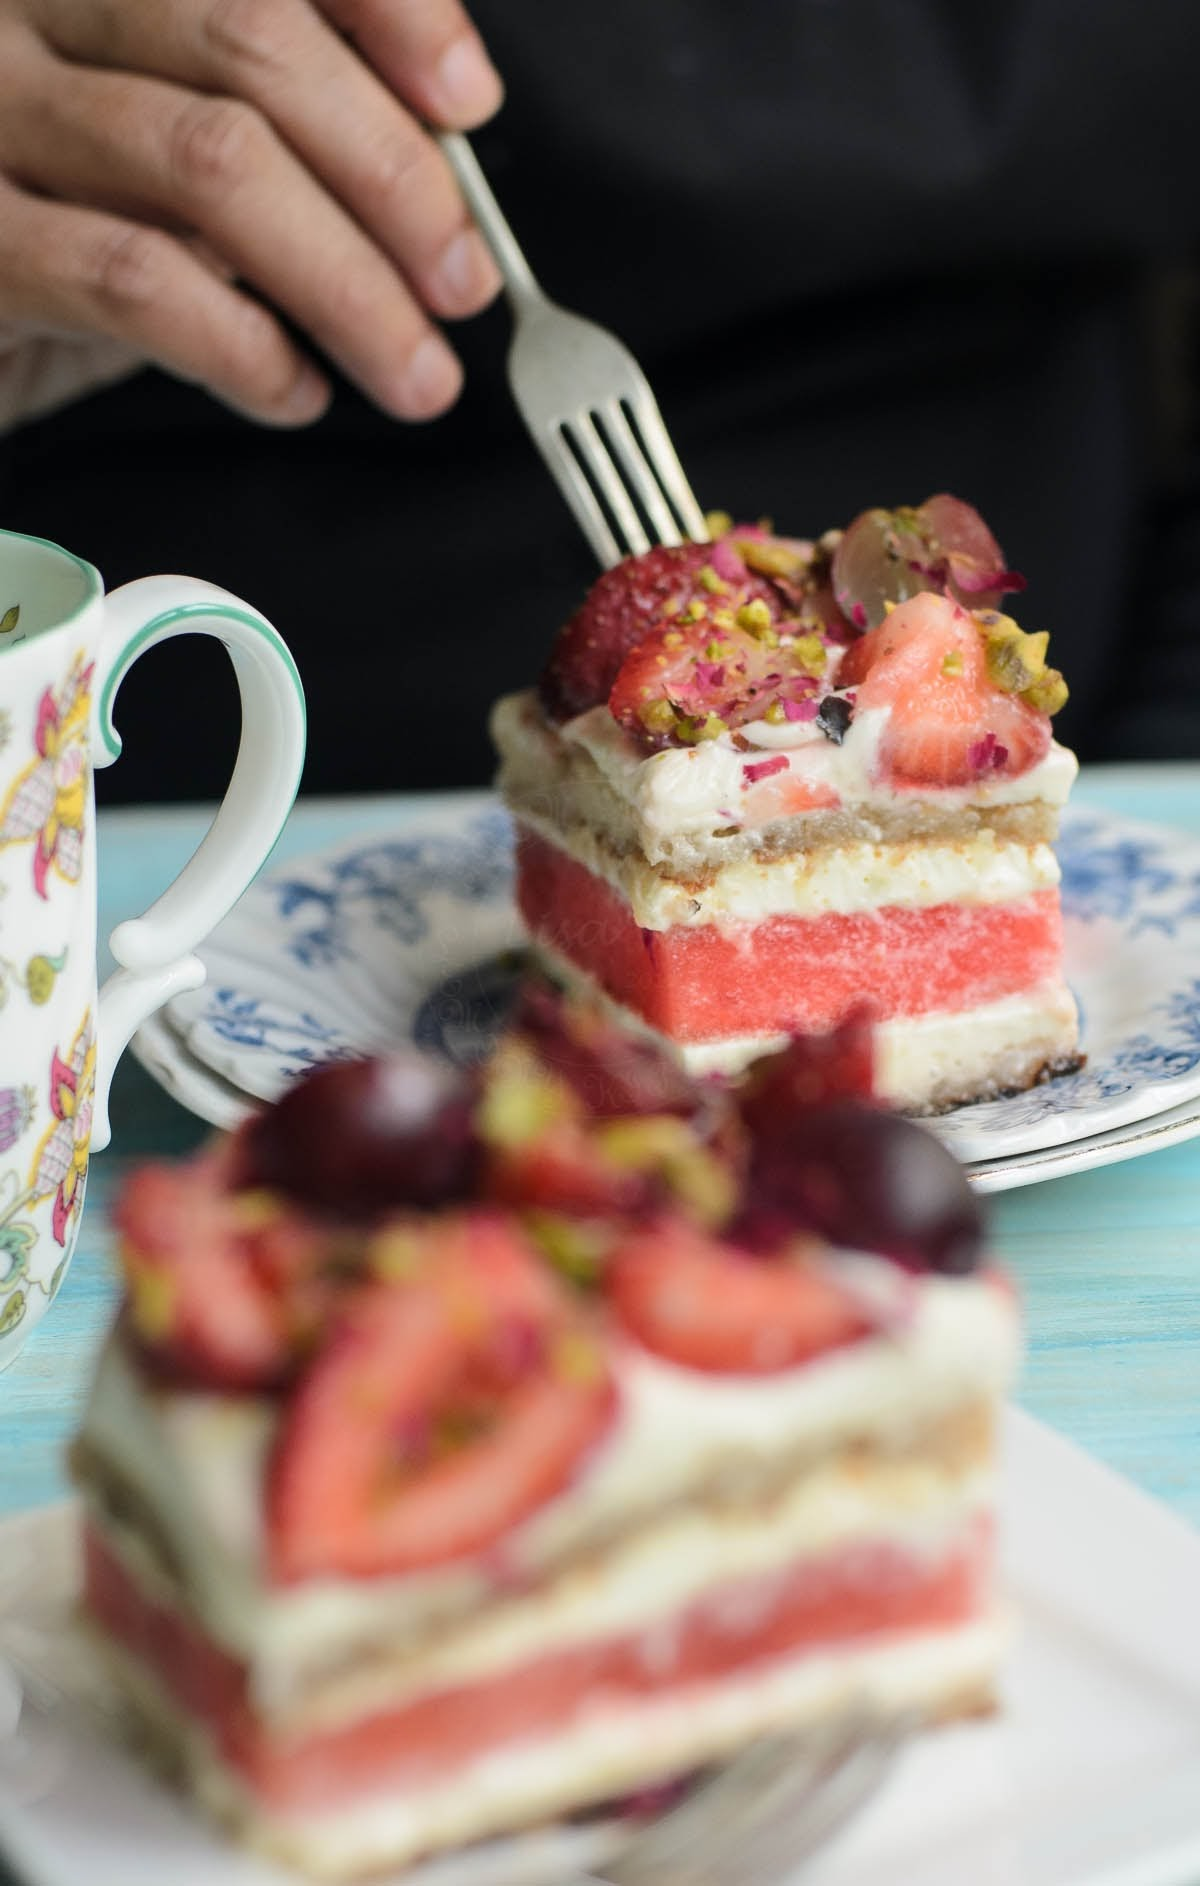 a slice of Watermelon and Strawberry Cake photo